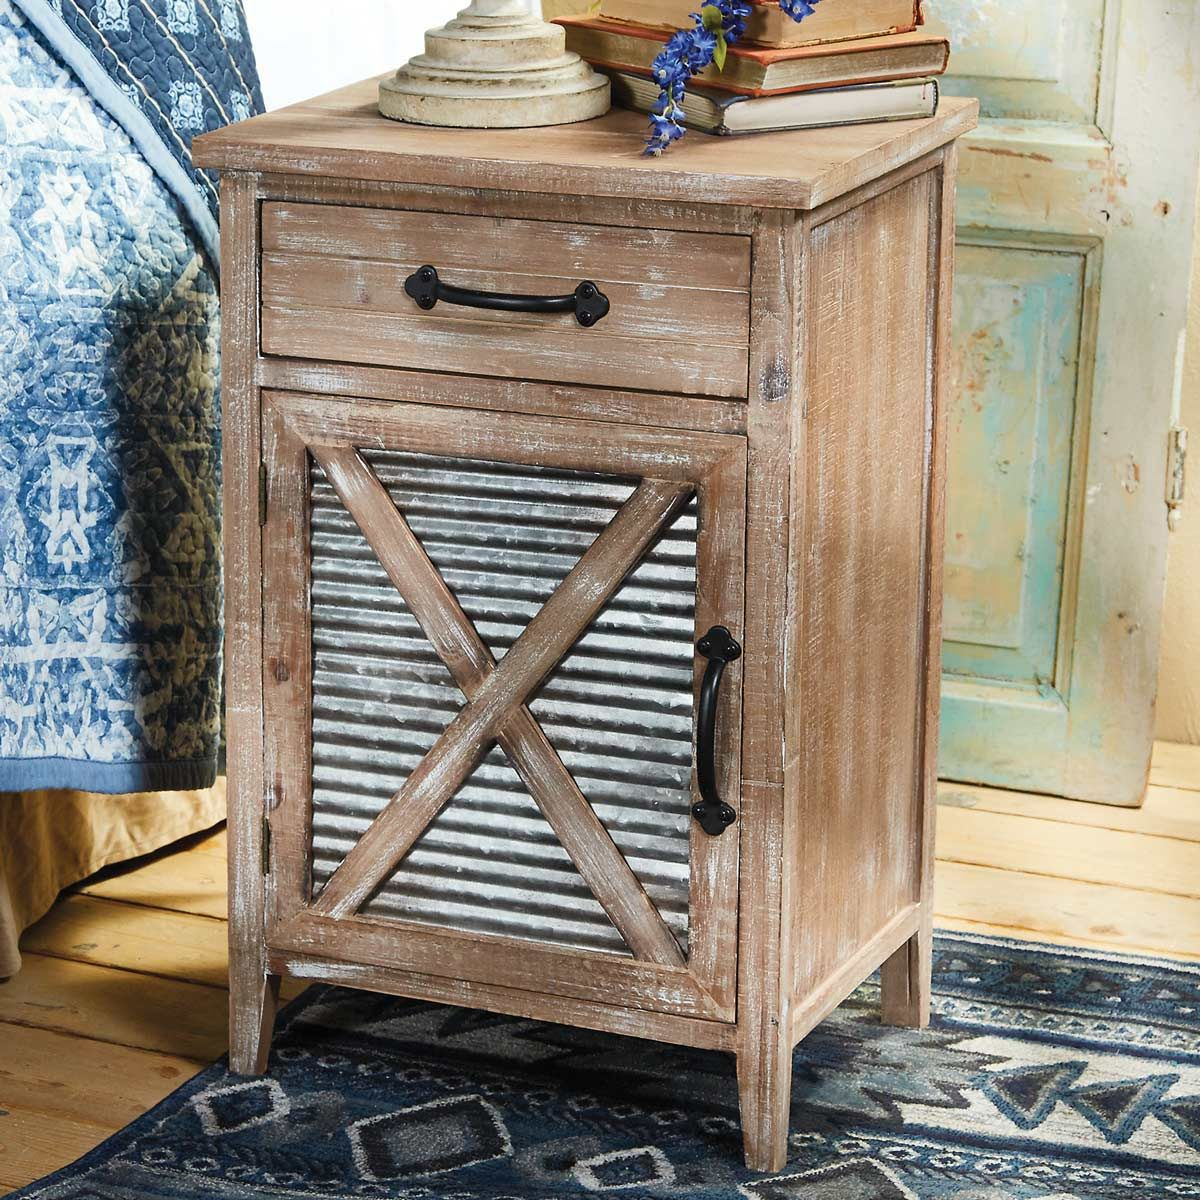 Rustic Barn Door Table - OUT OF STOCK